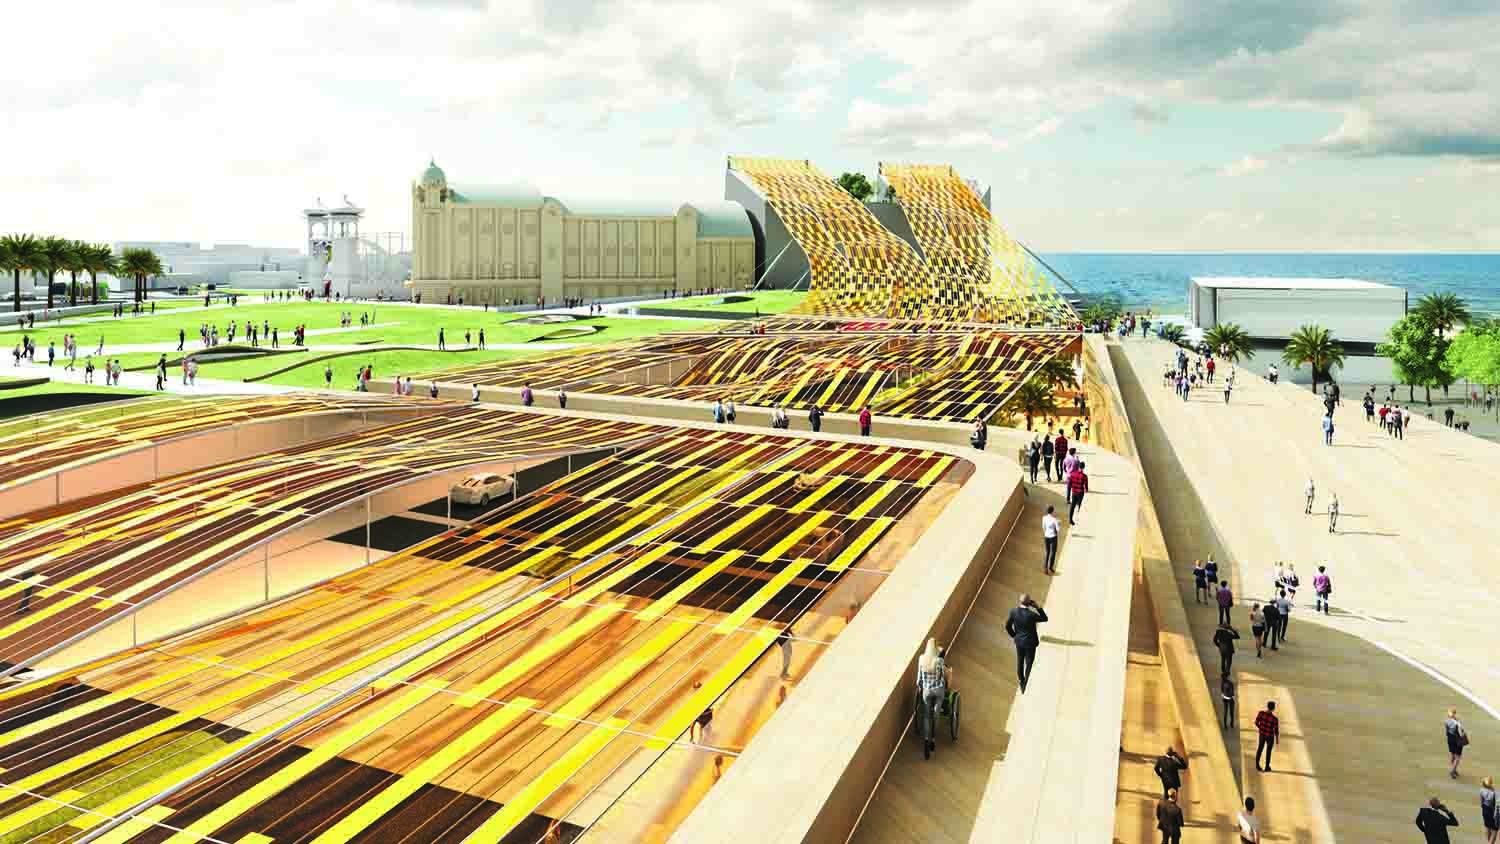 flexible mono-crystalline silicon photovoltaic, wind energy harvesting, microbial fuel cells, LAGI 2018, St Kilda Triangle, City of Port Phillip, Melbourne, Australia, renewable energy, clean energy, green design, urban design, LAGI 2018